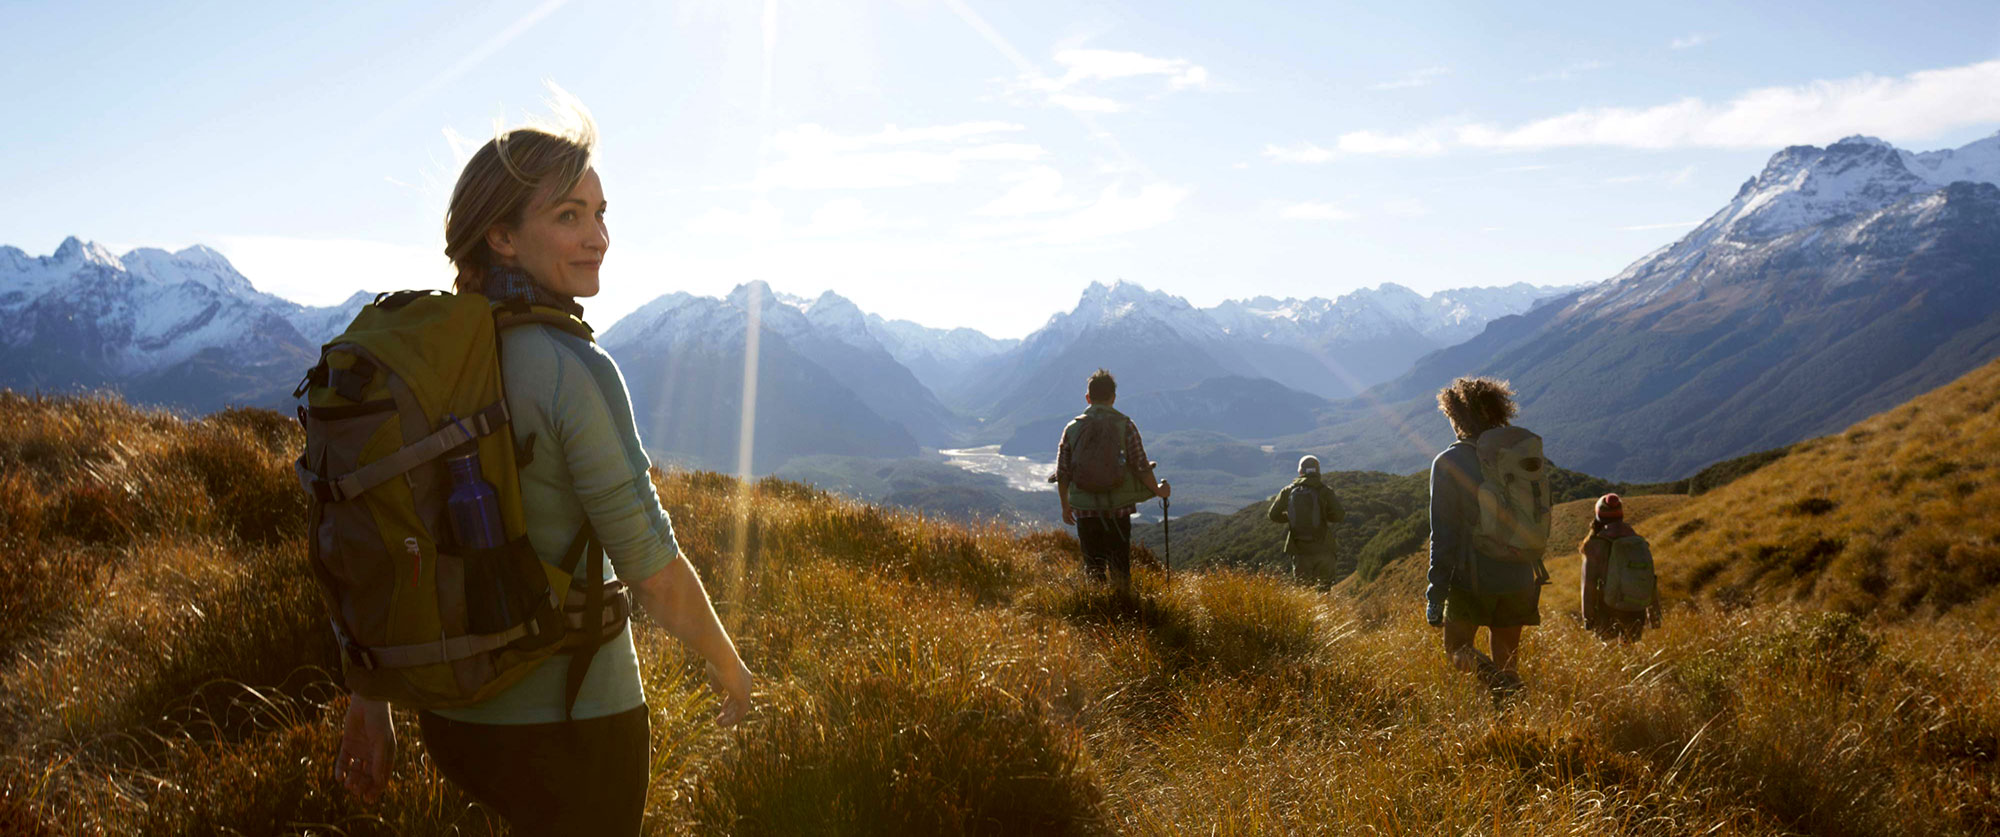 The Most Thrilling Torres Del Paine Trekking Excursions From Puerto Natales